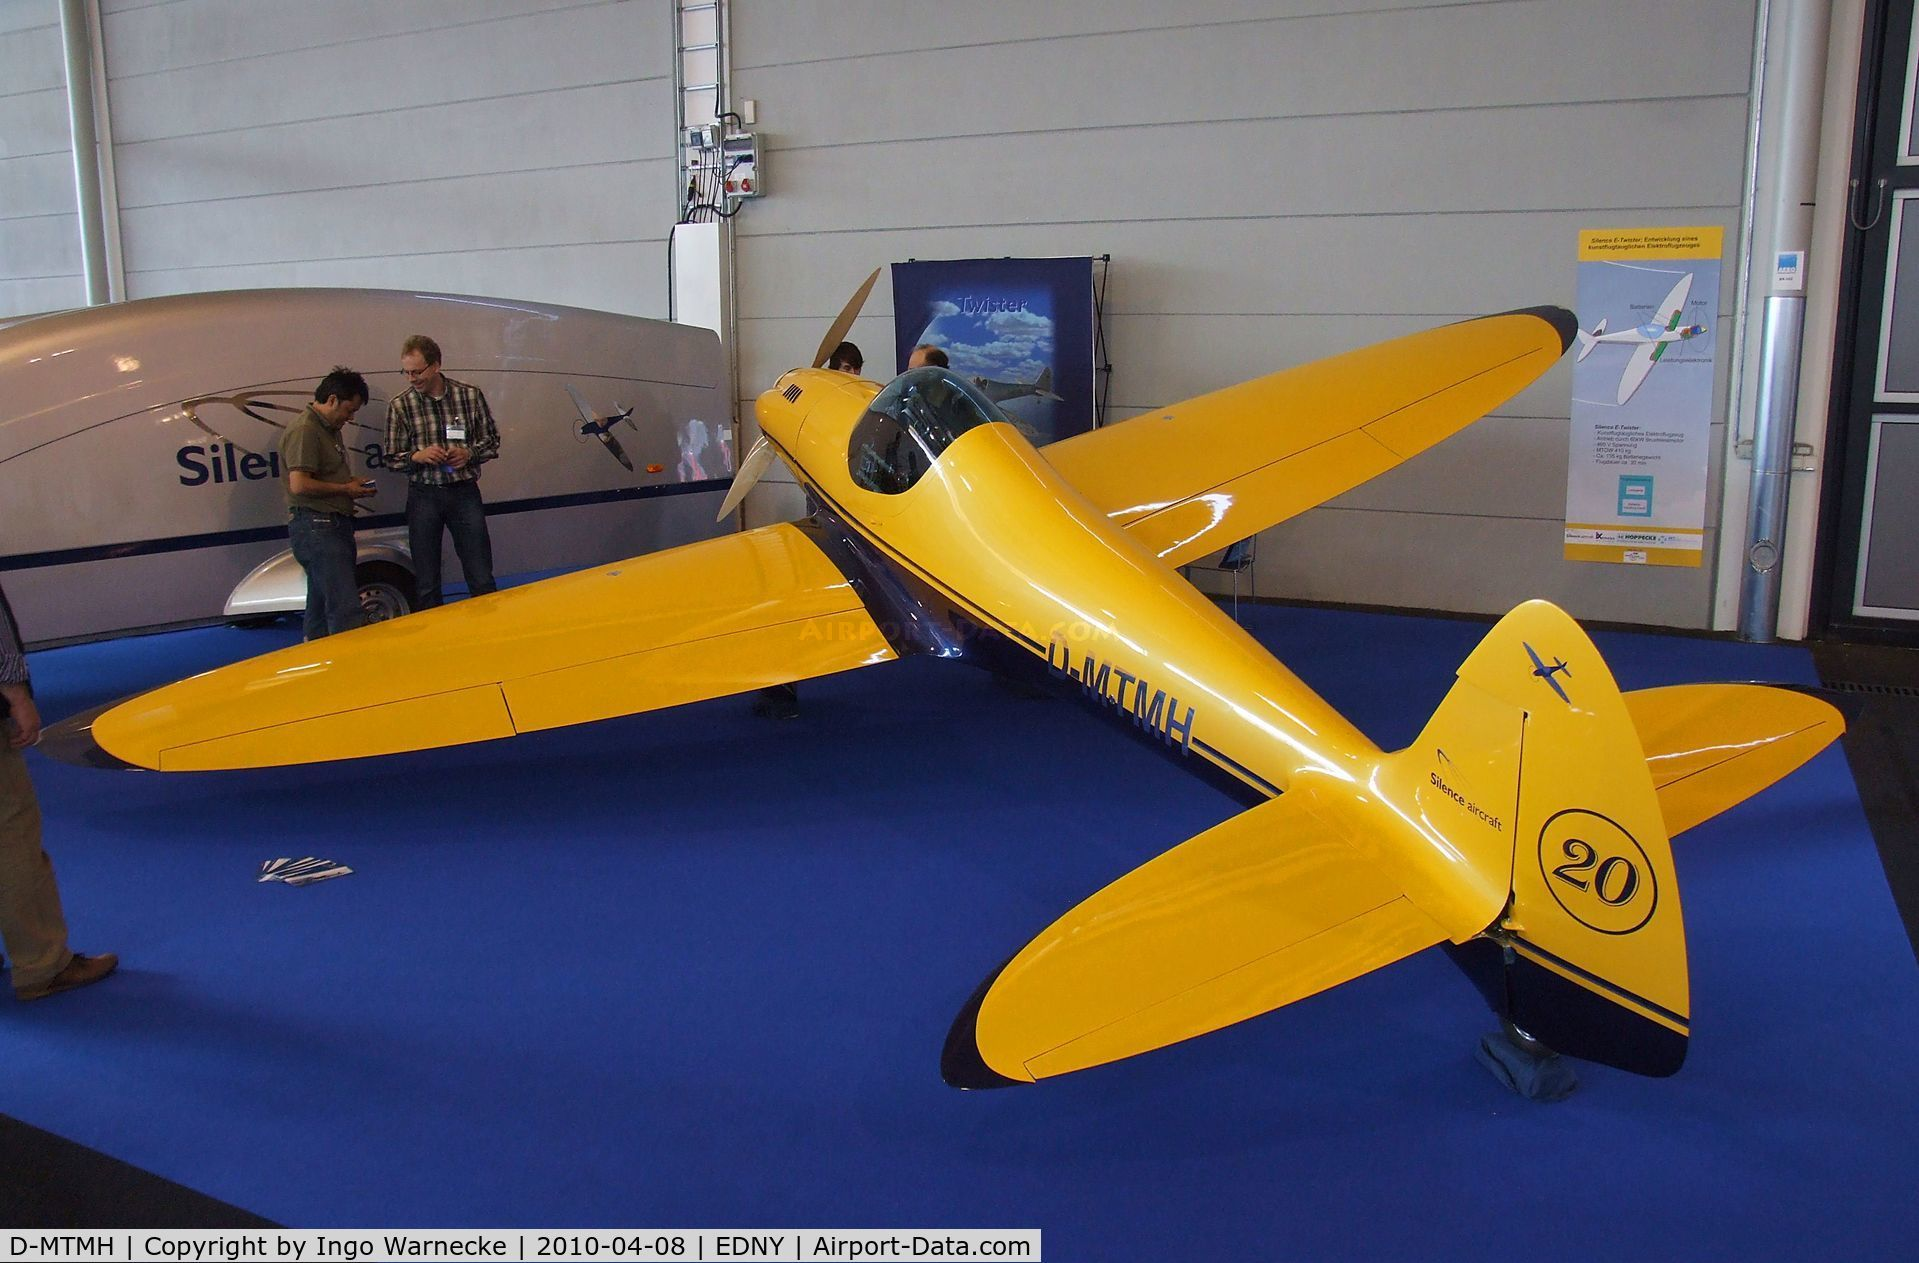 D-MTMH, 2000 Silence Twister C/N 001, Silence Twister Prototype at the AERO 2010, Friedrichshafen